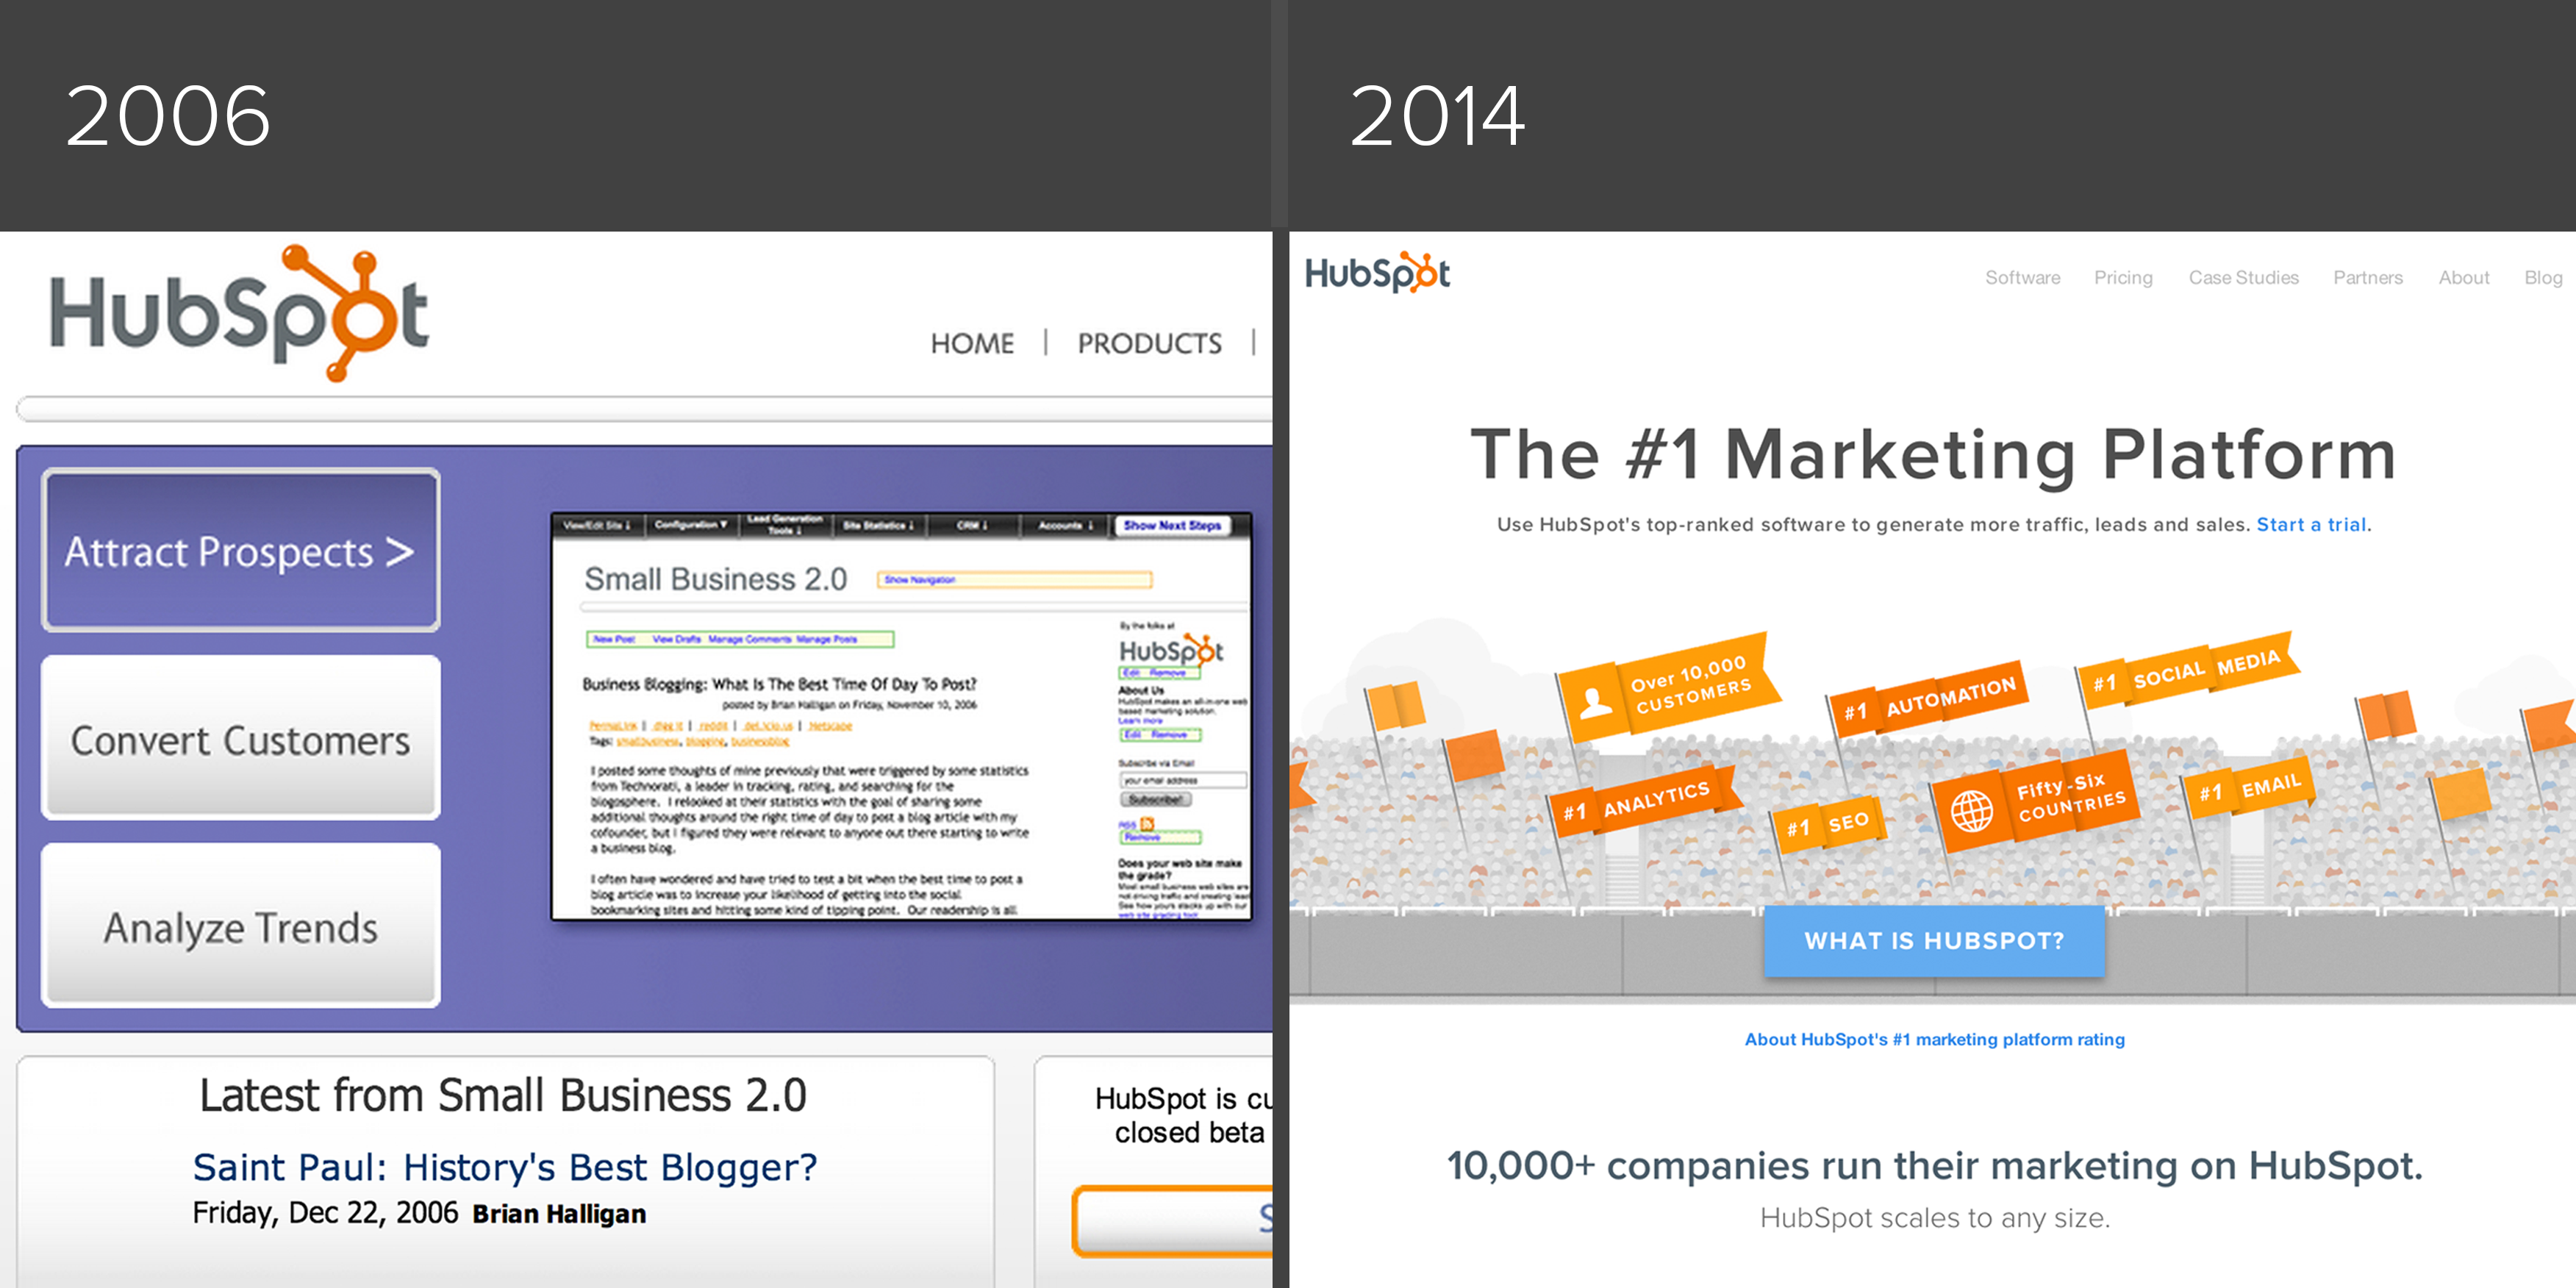 HubSpot_Then_and_Now-1